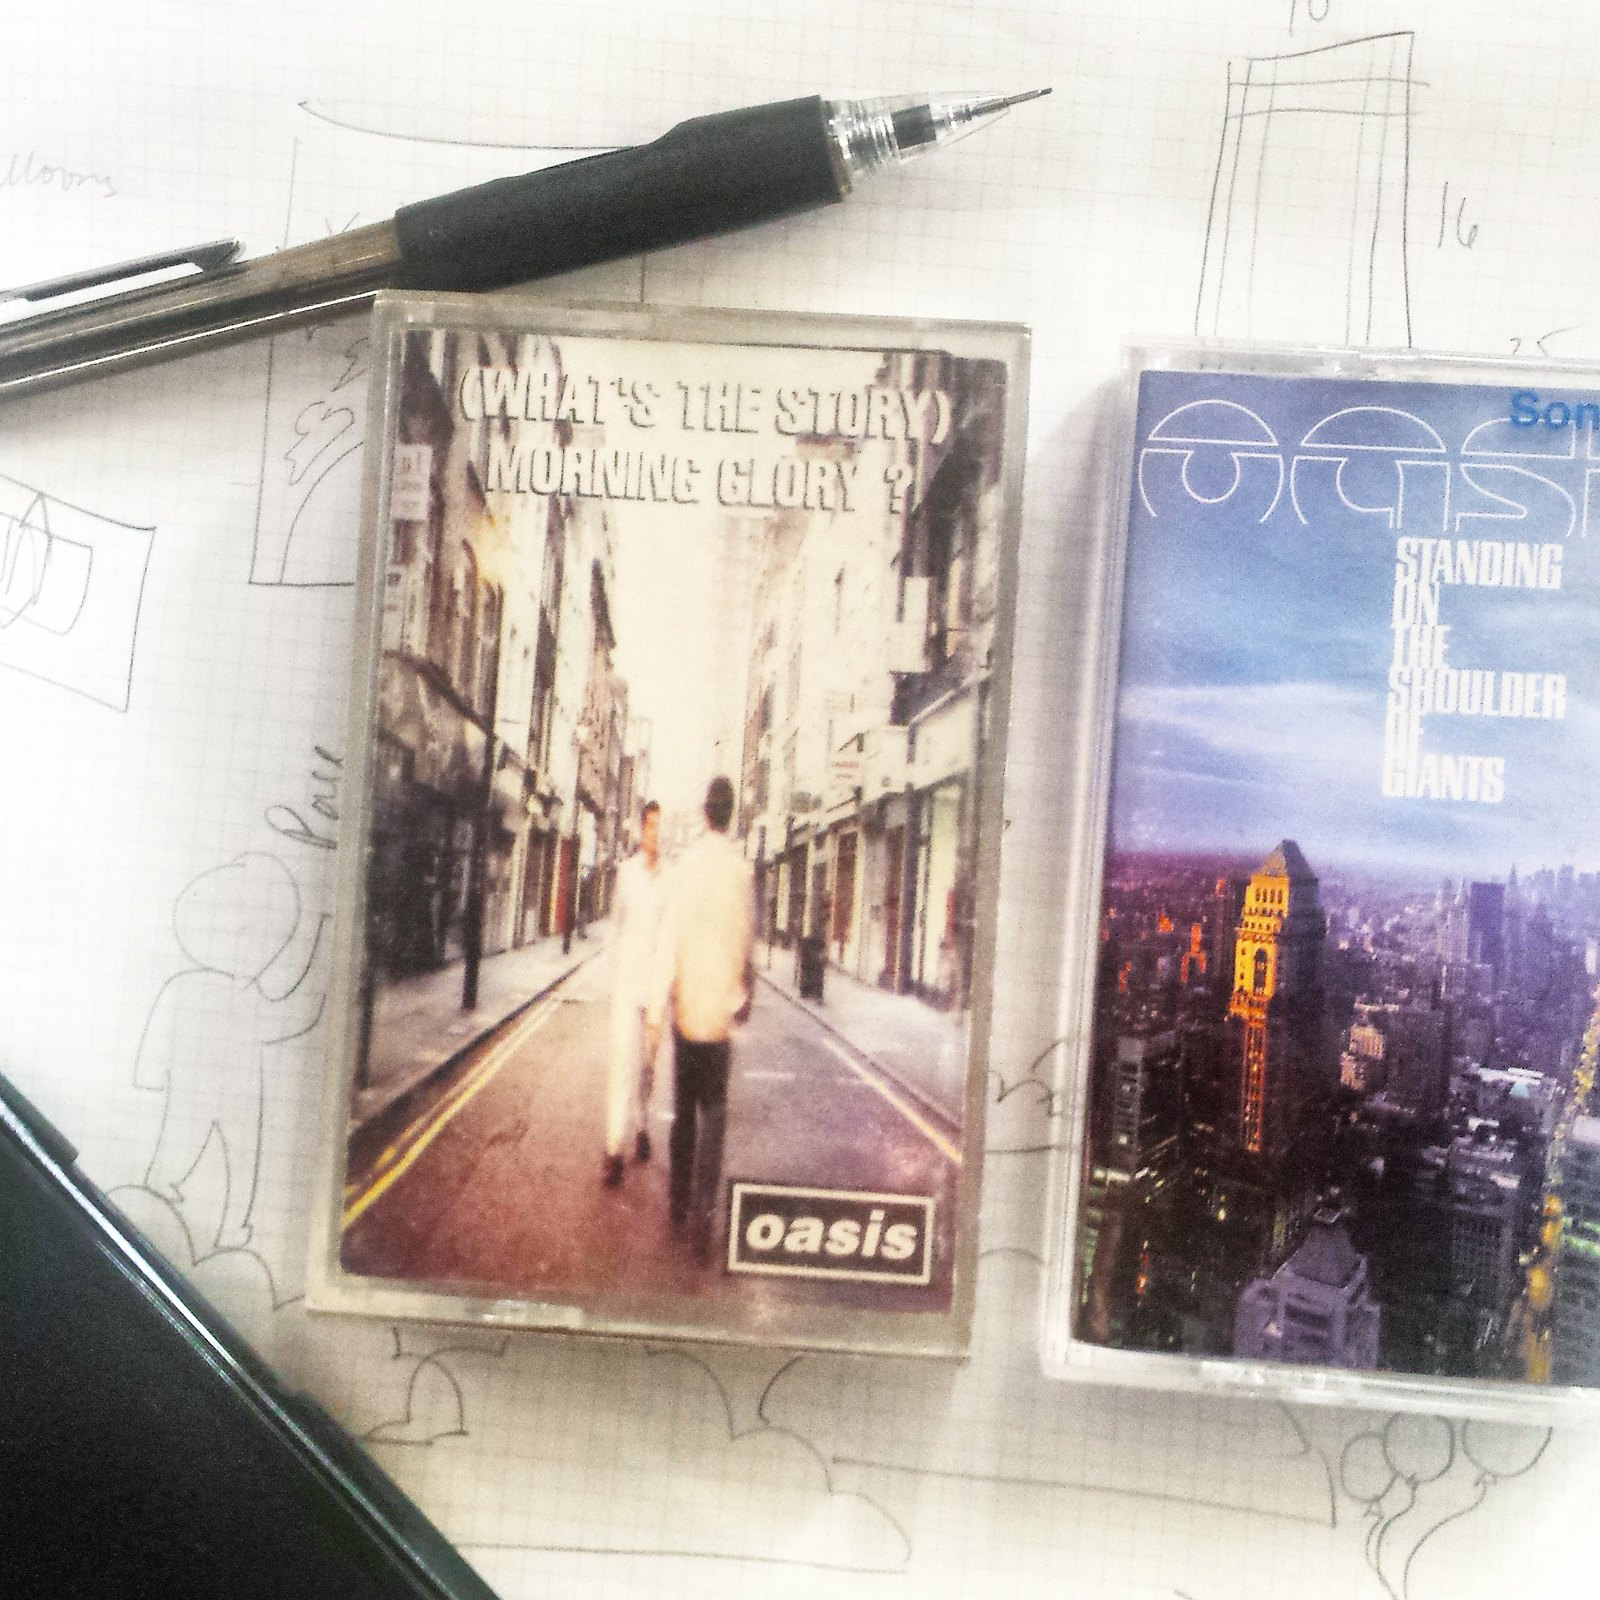 Oasis Tapes